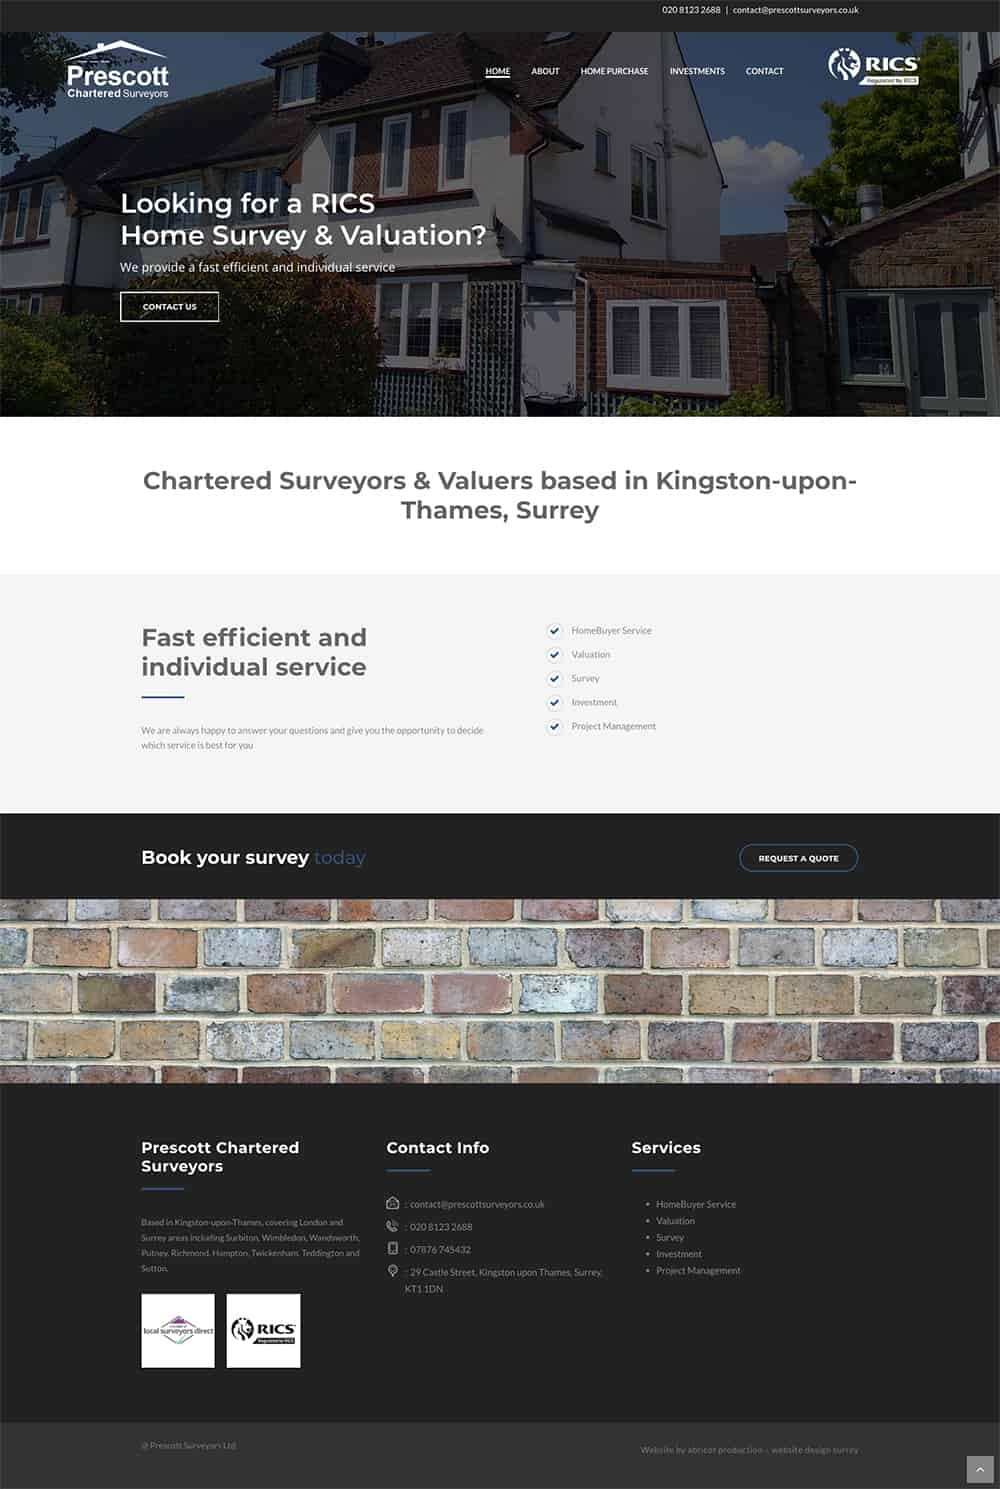 Prescott Surveyors Kingston-upon-Thames, Surrey - Web design